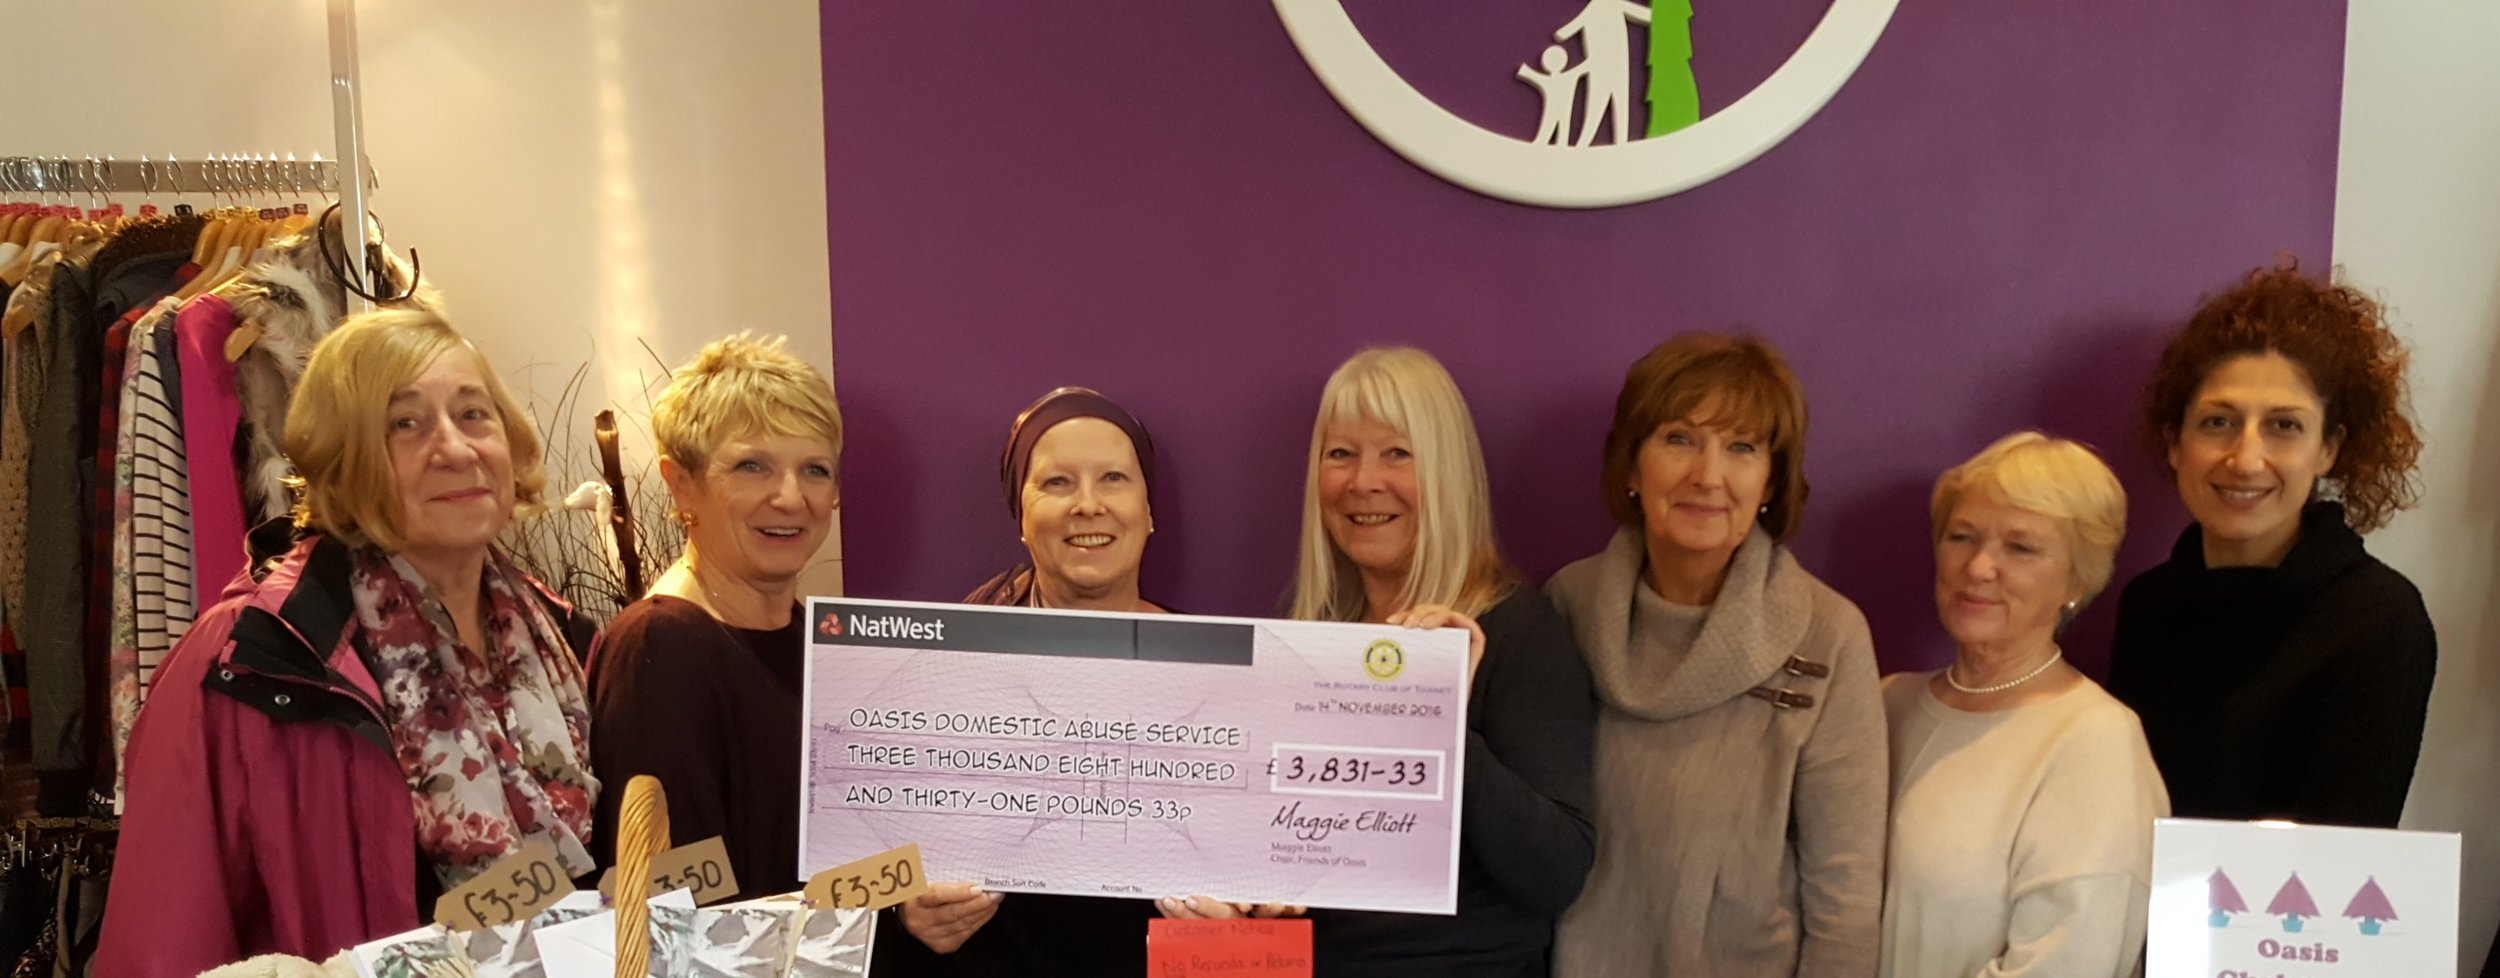 Friends of Oasis present a cheque to Oasis